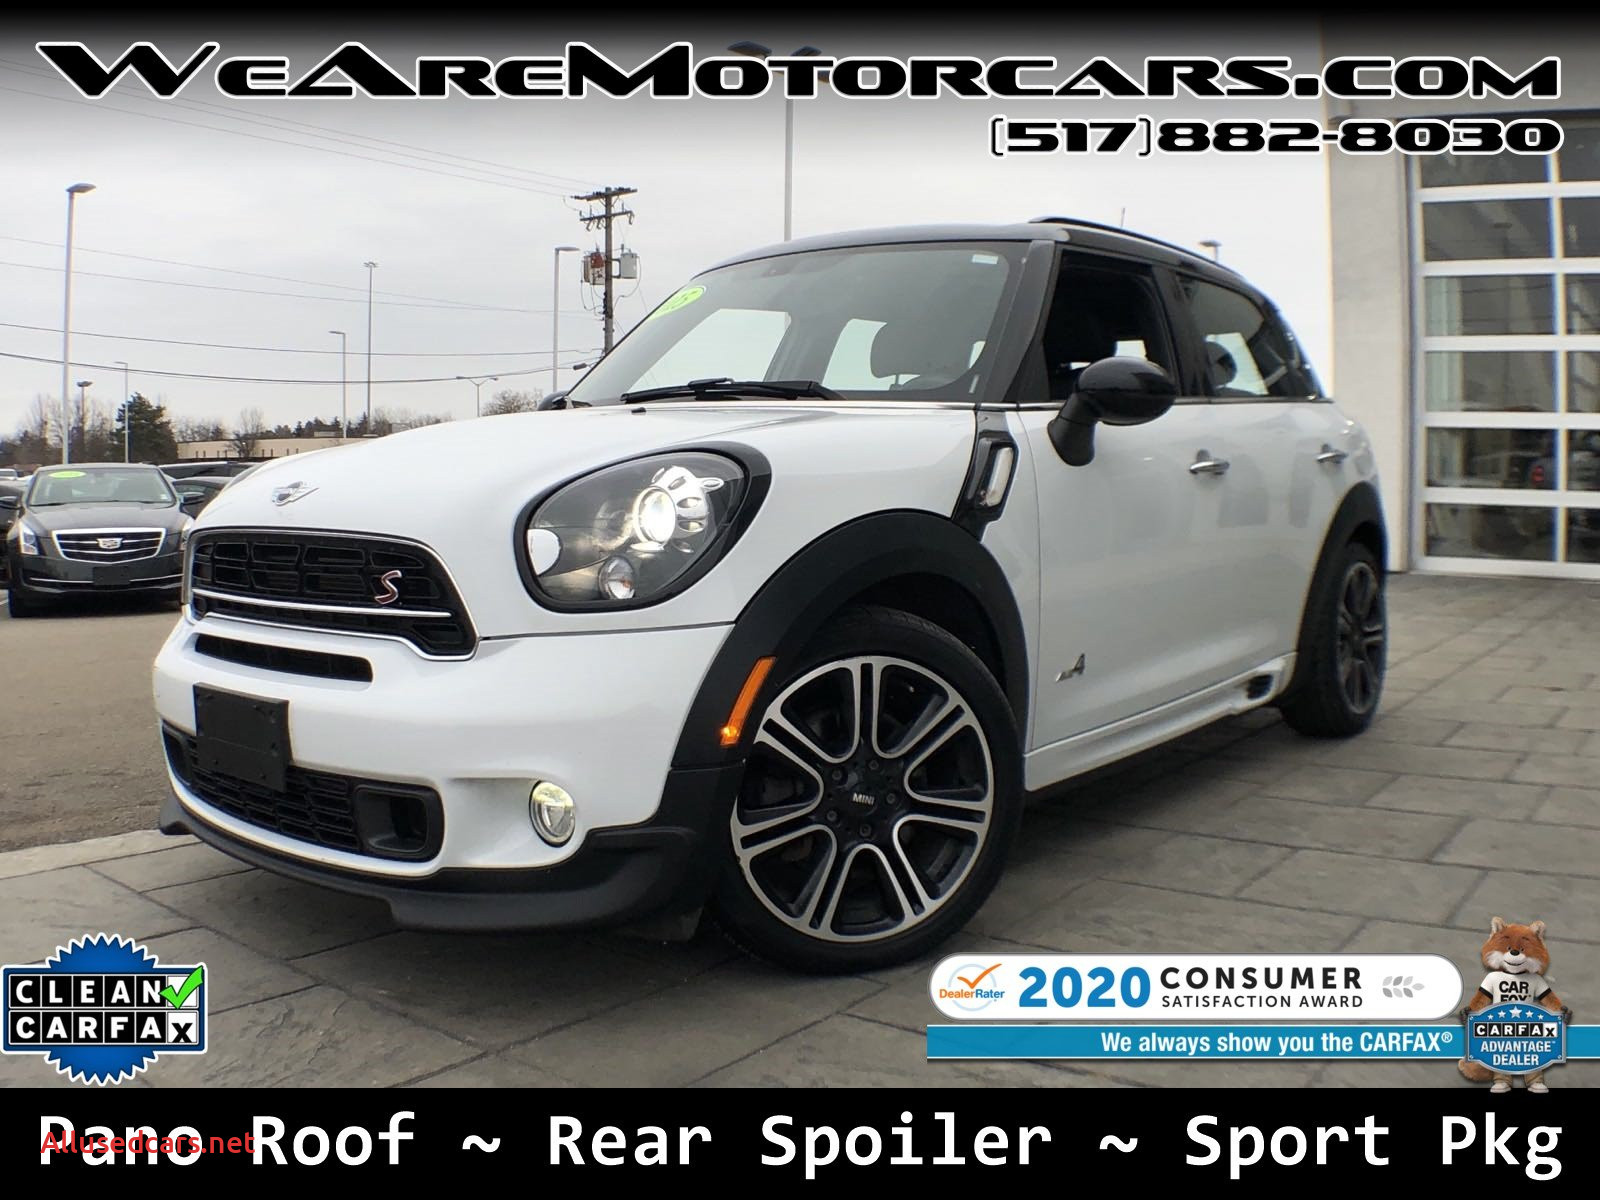 Mini Cooper Dealer New Used 2015 Mini Cooper Countryman for Sale at Motorcars Group